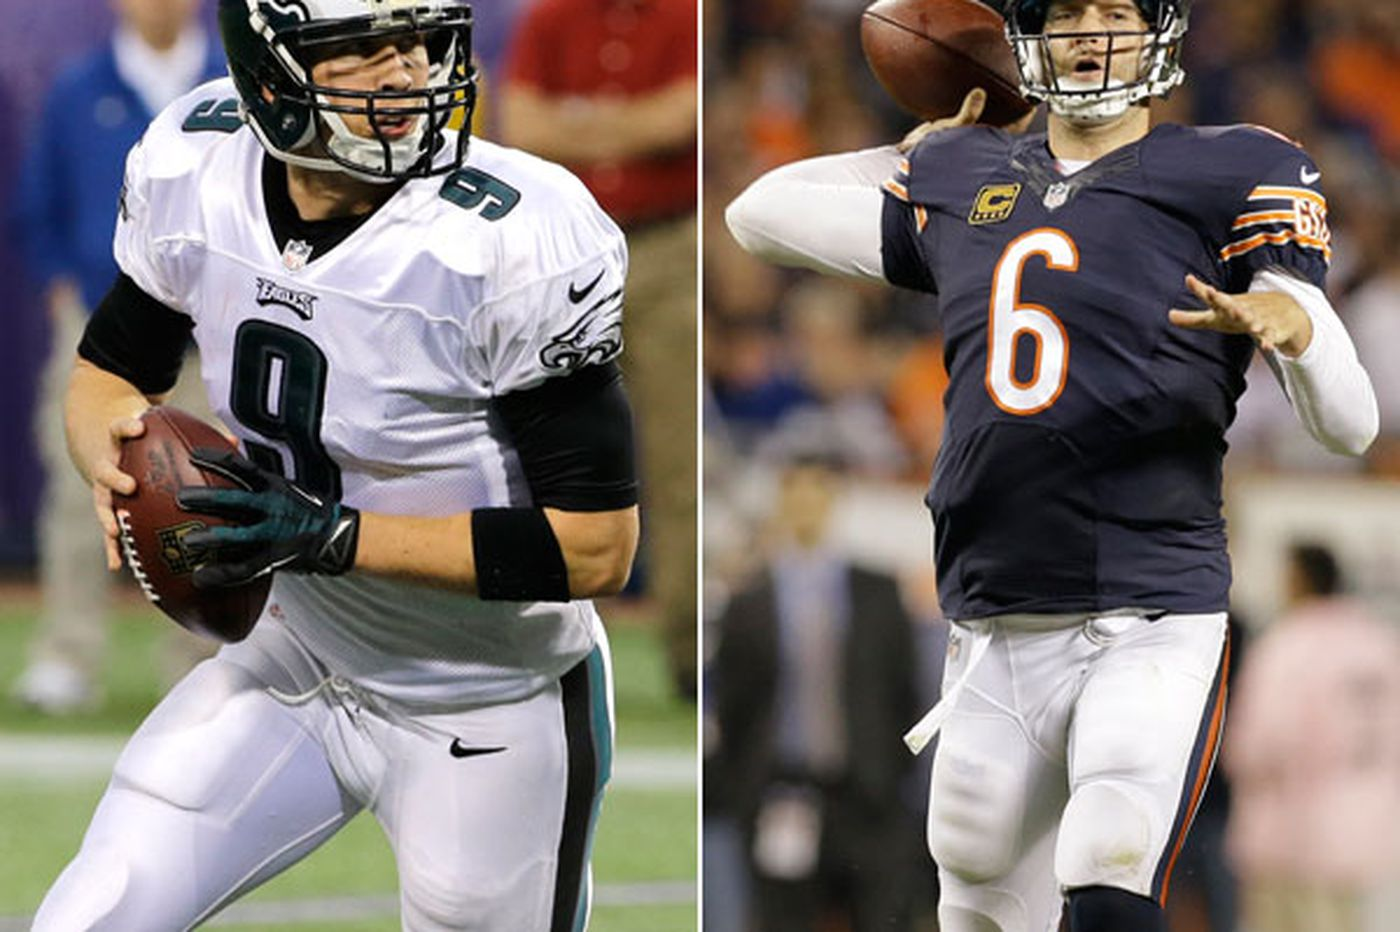 Scouting the Eagles and Bears